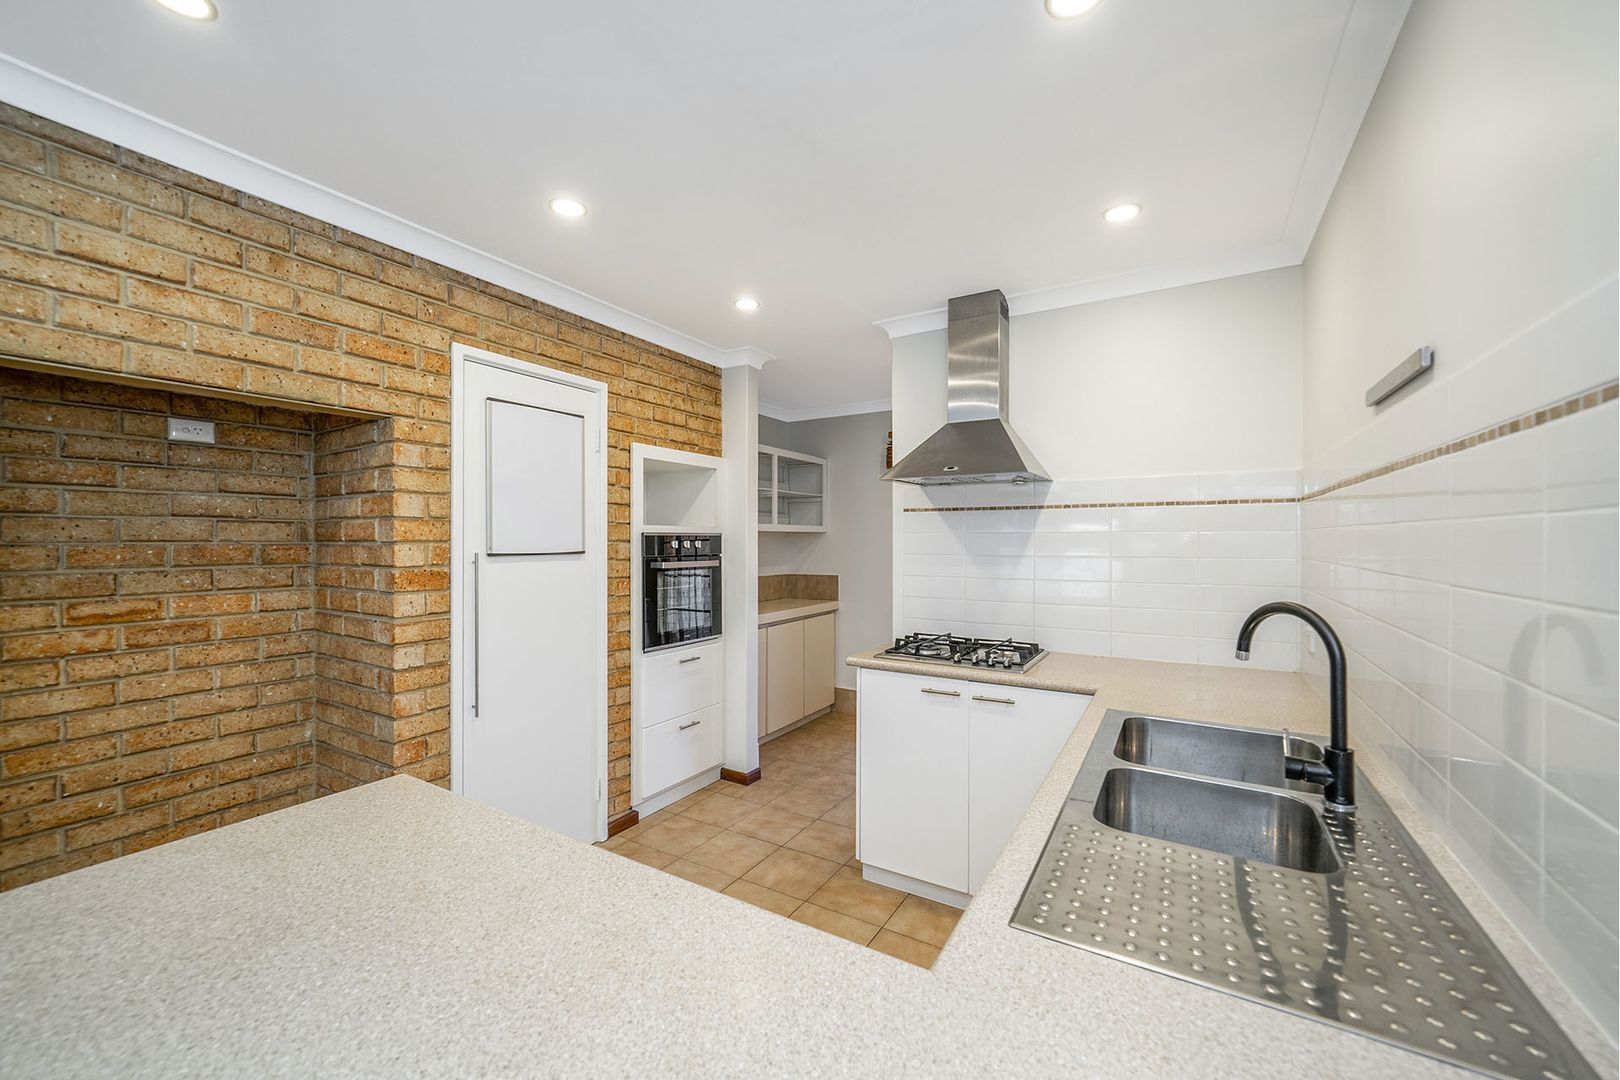 2/55 Guildford, Mount Lawley WA 6050, Image 2